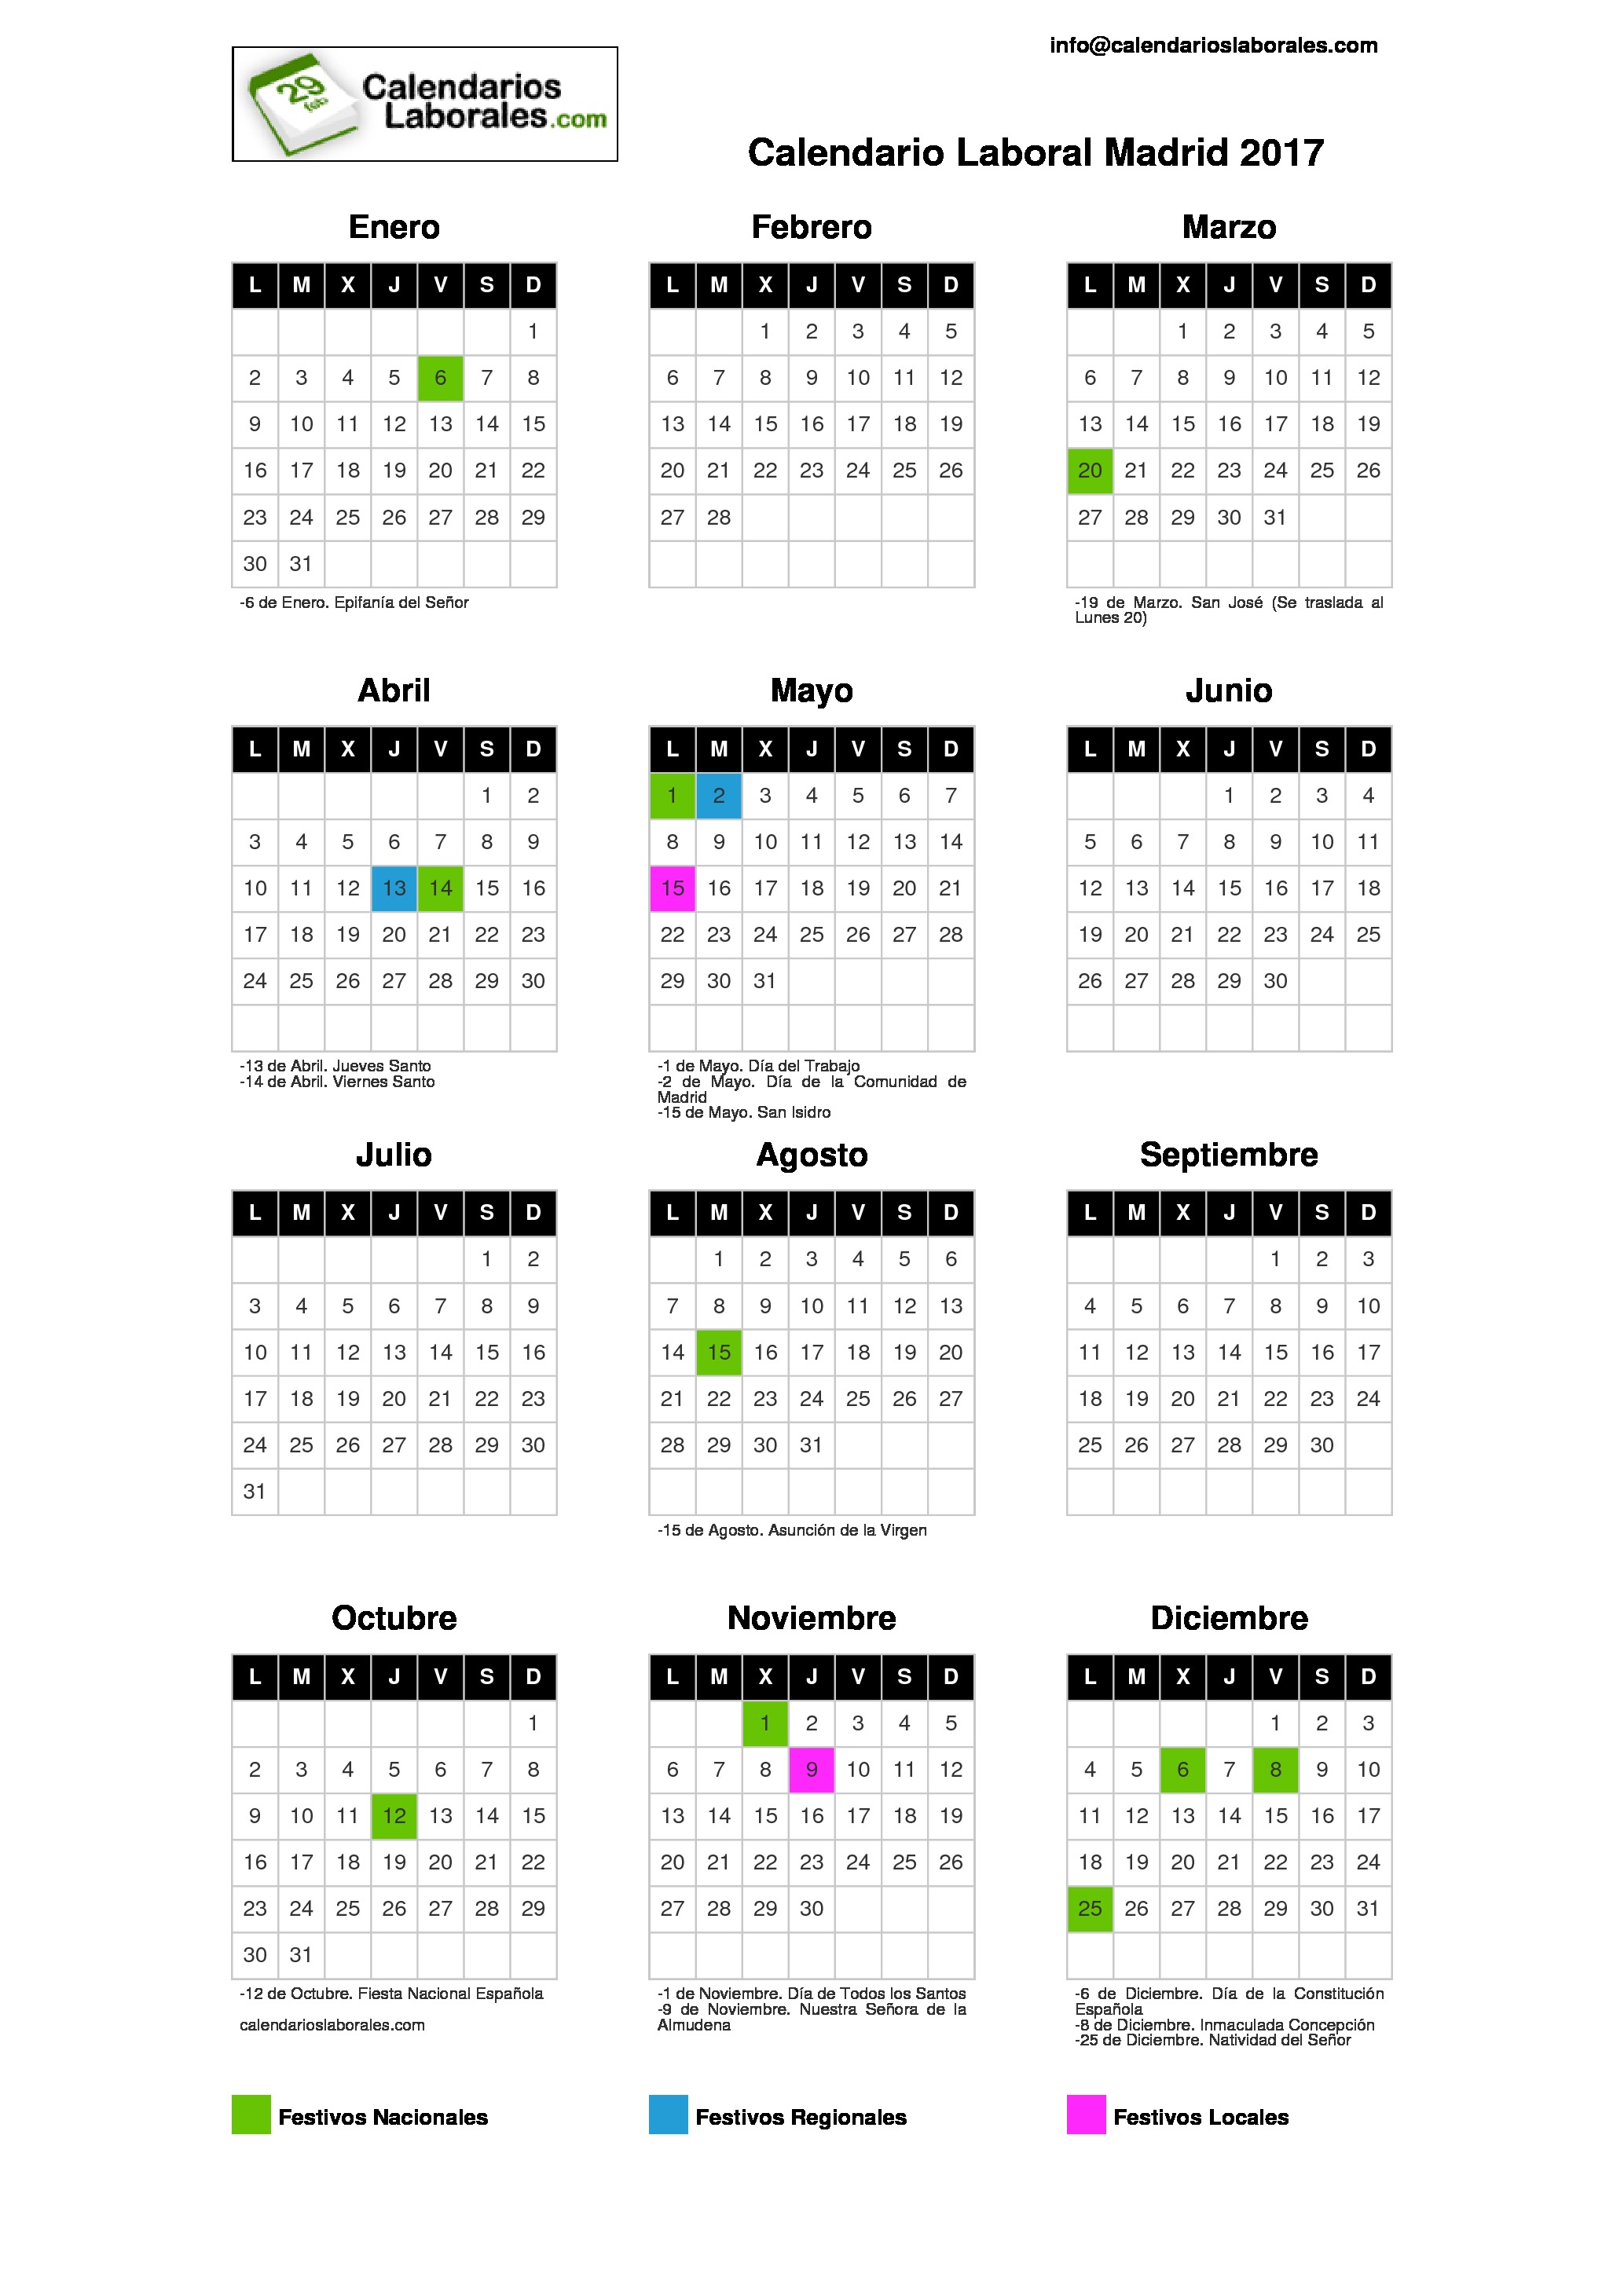 Calendario laboral madrid 2017 for Festivos asturias 2017